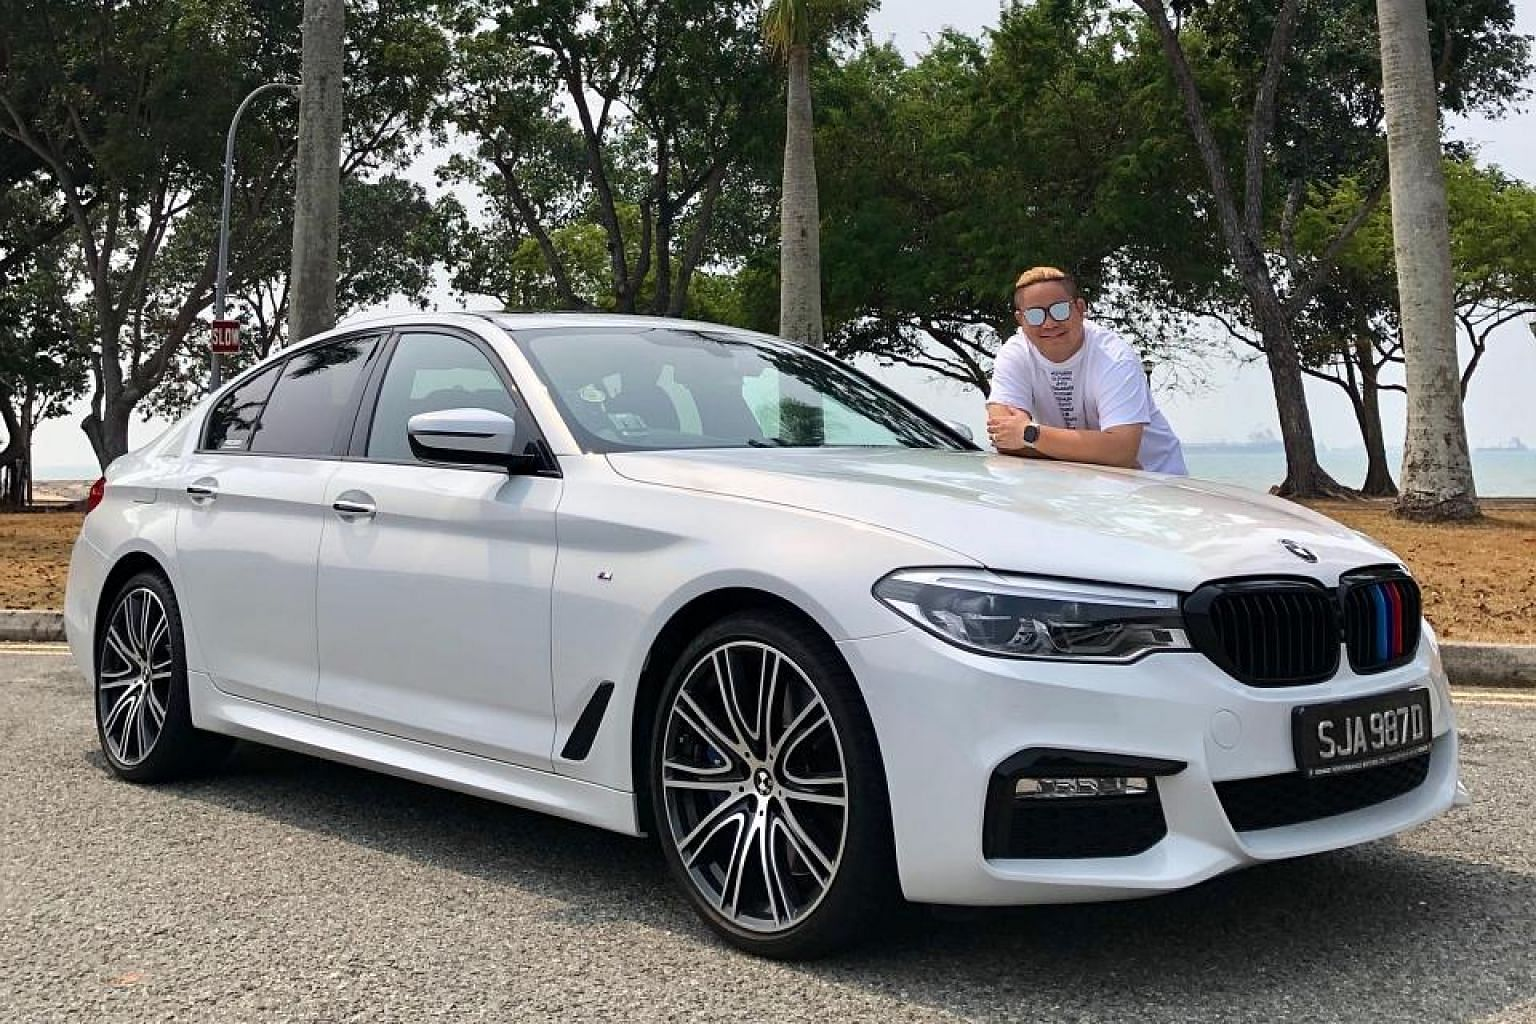 Justin Ang had the BMW 540i wrapped in white, which is reversible, as opposed to having it resprayed.